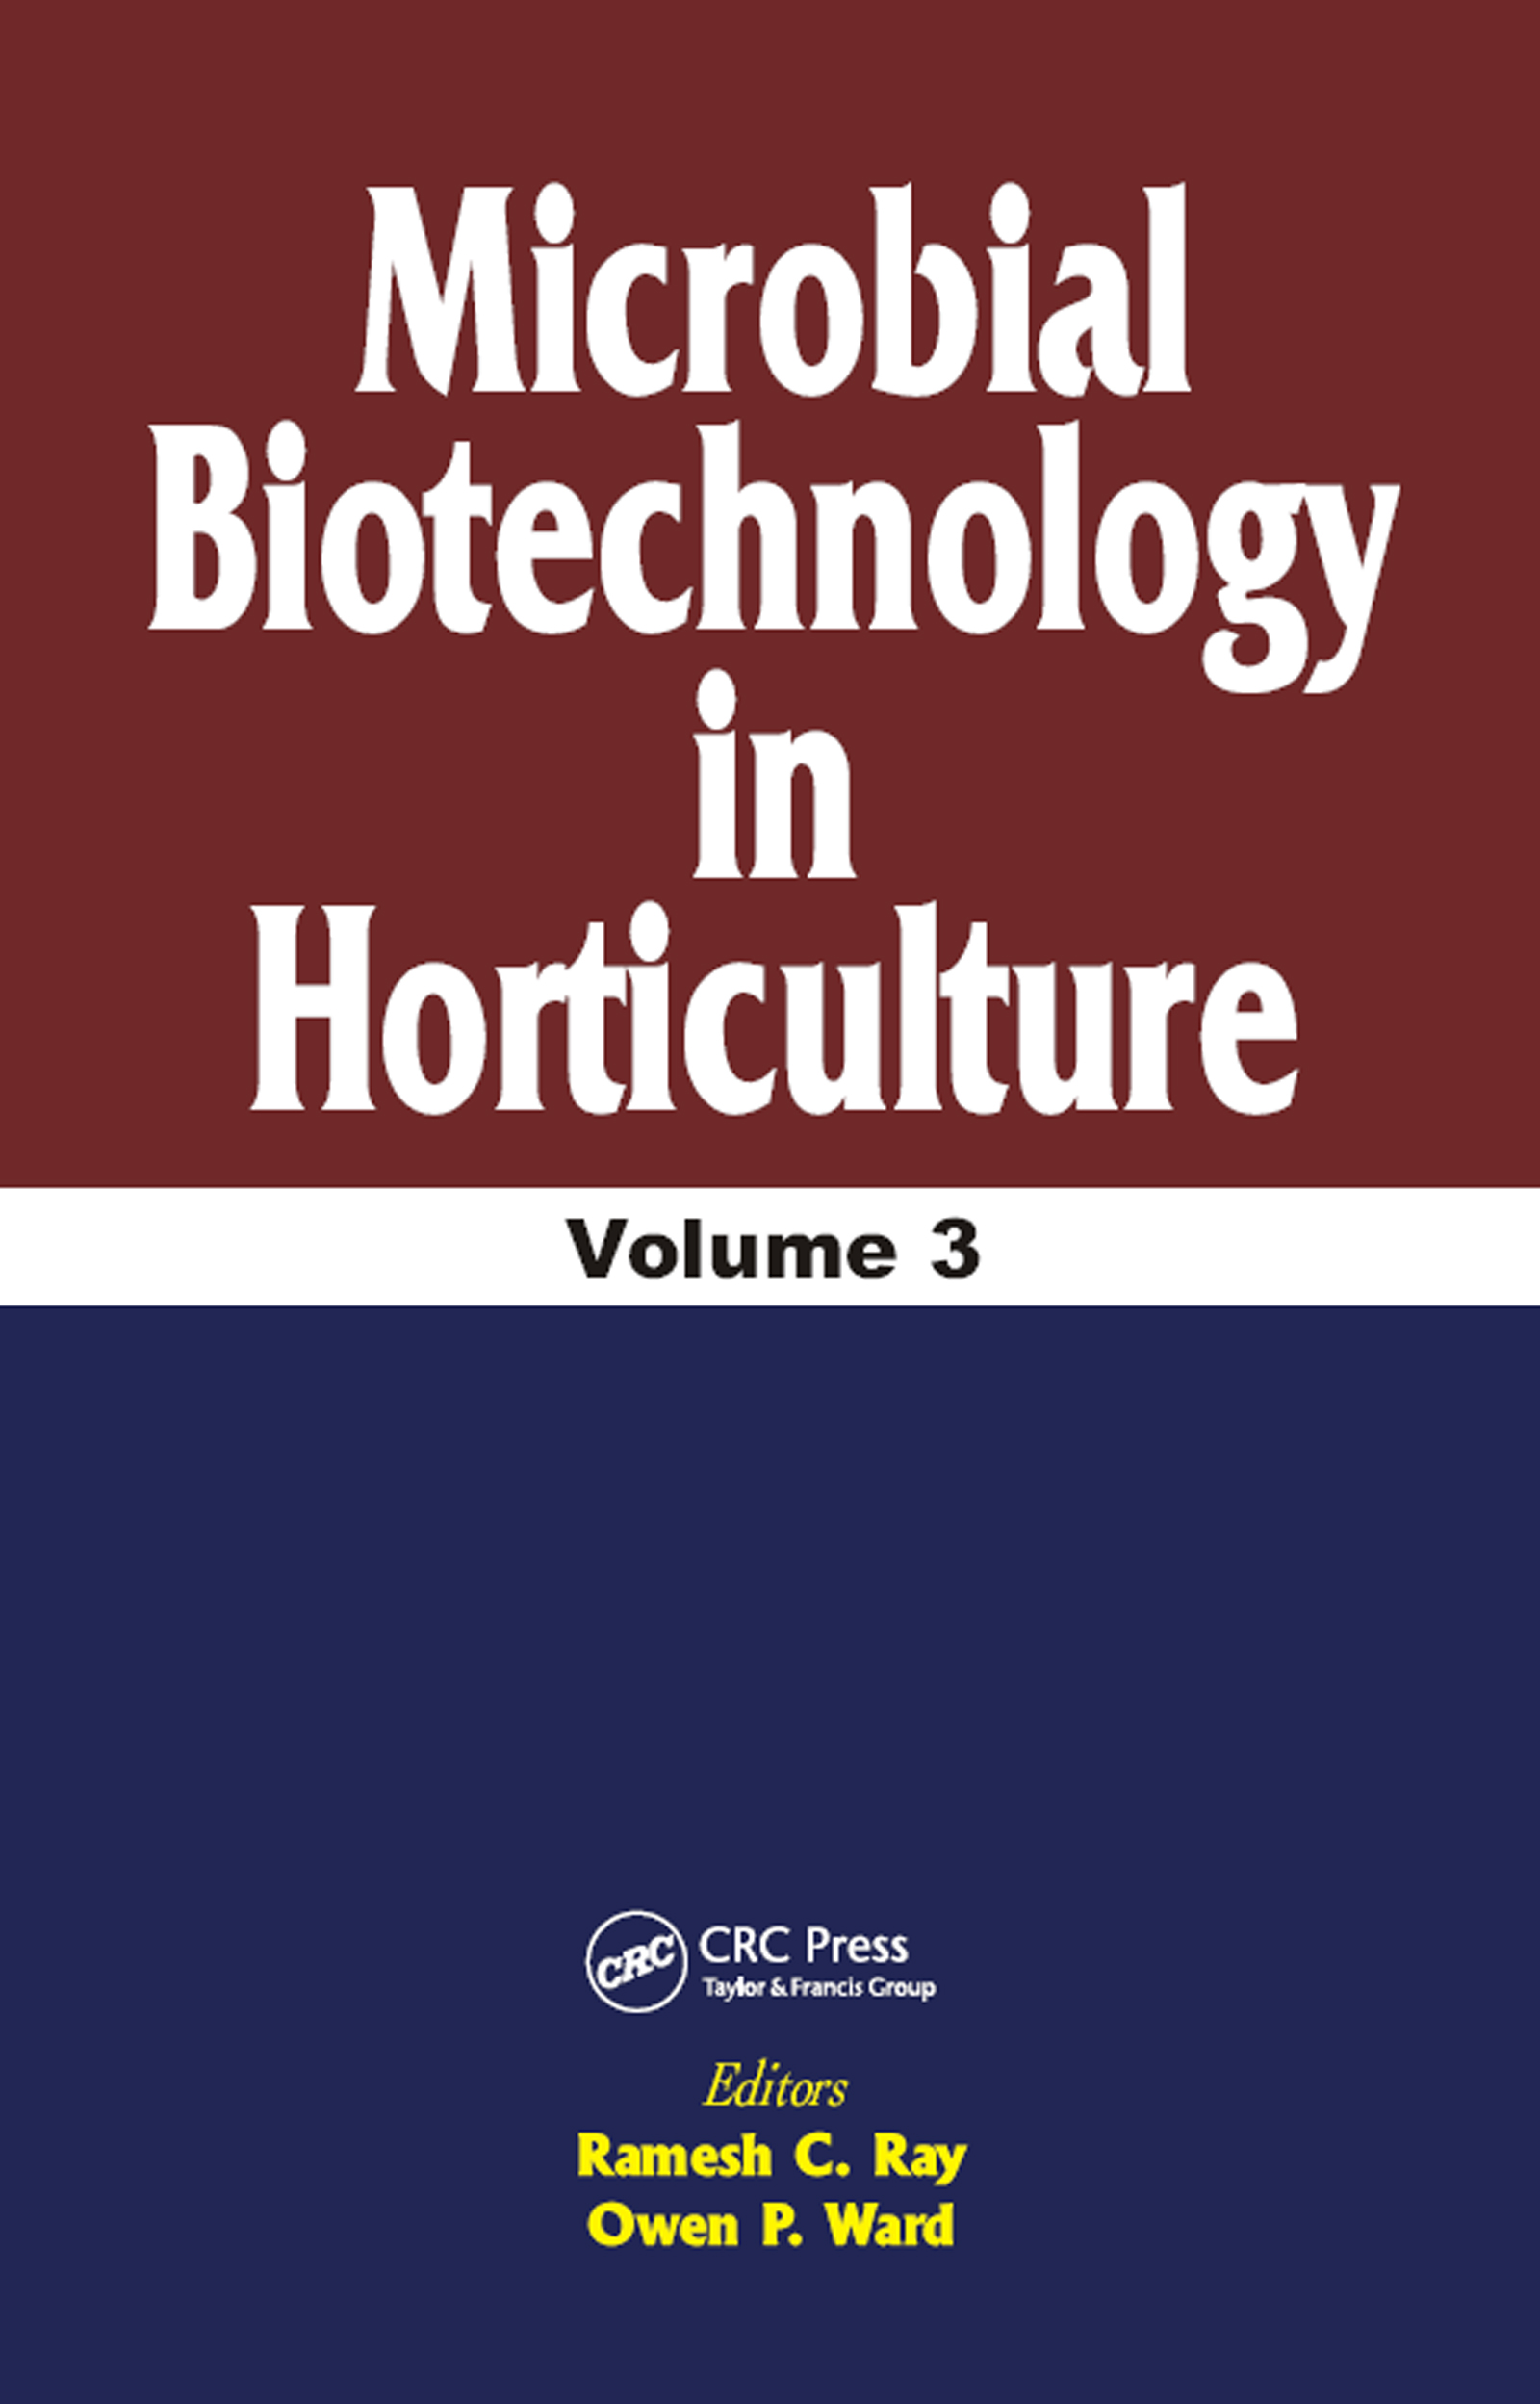 Microbial Biotechnology in Horticulture, Vol. 3